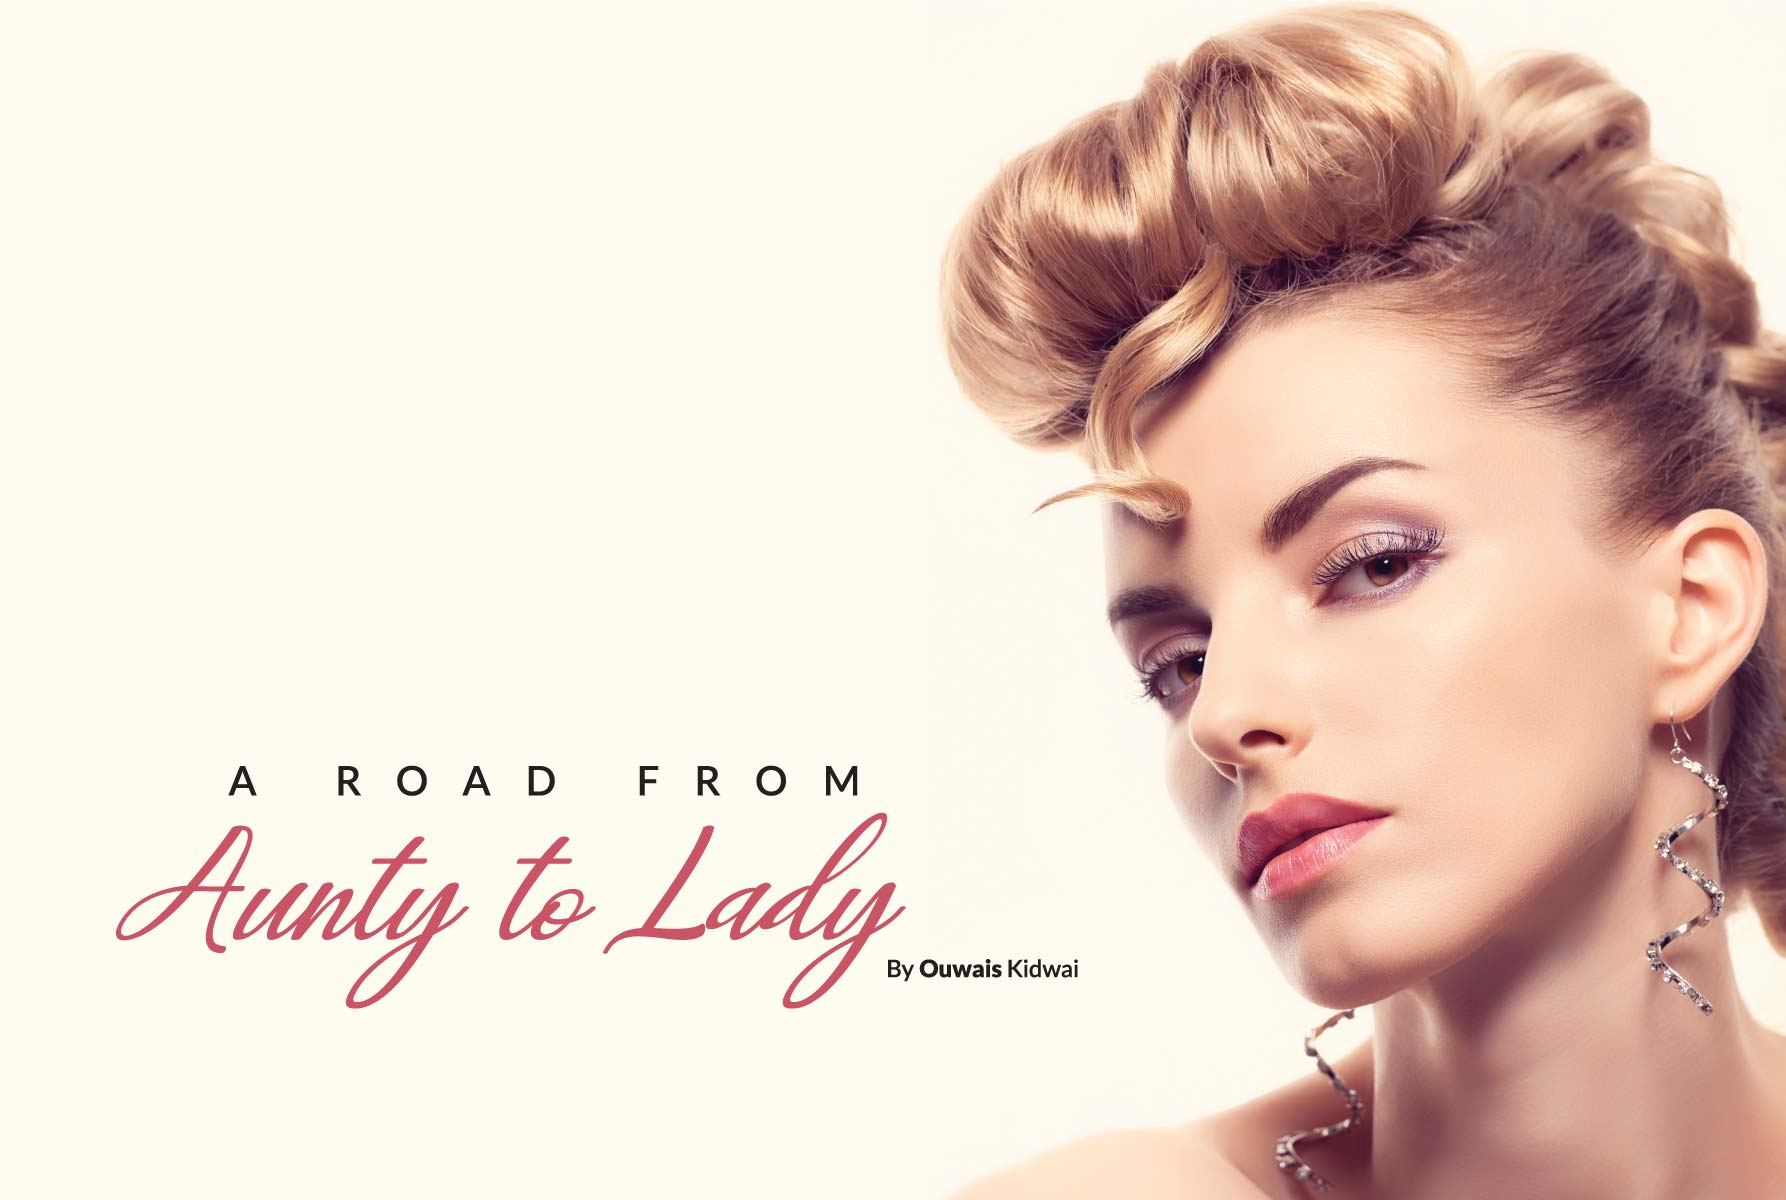 A Road from Aunty to Lady